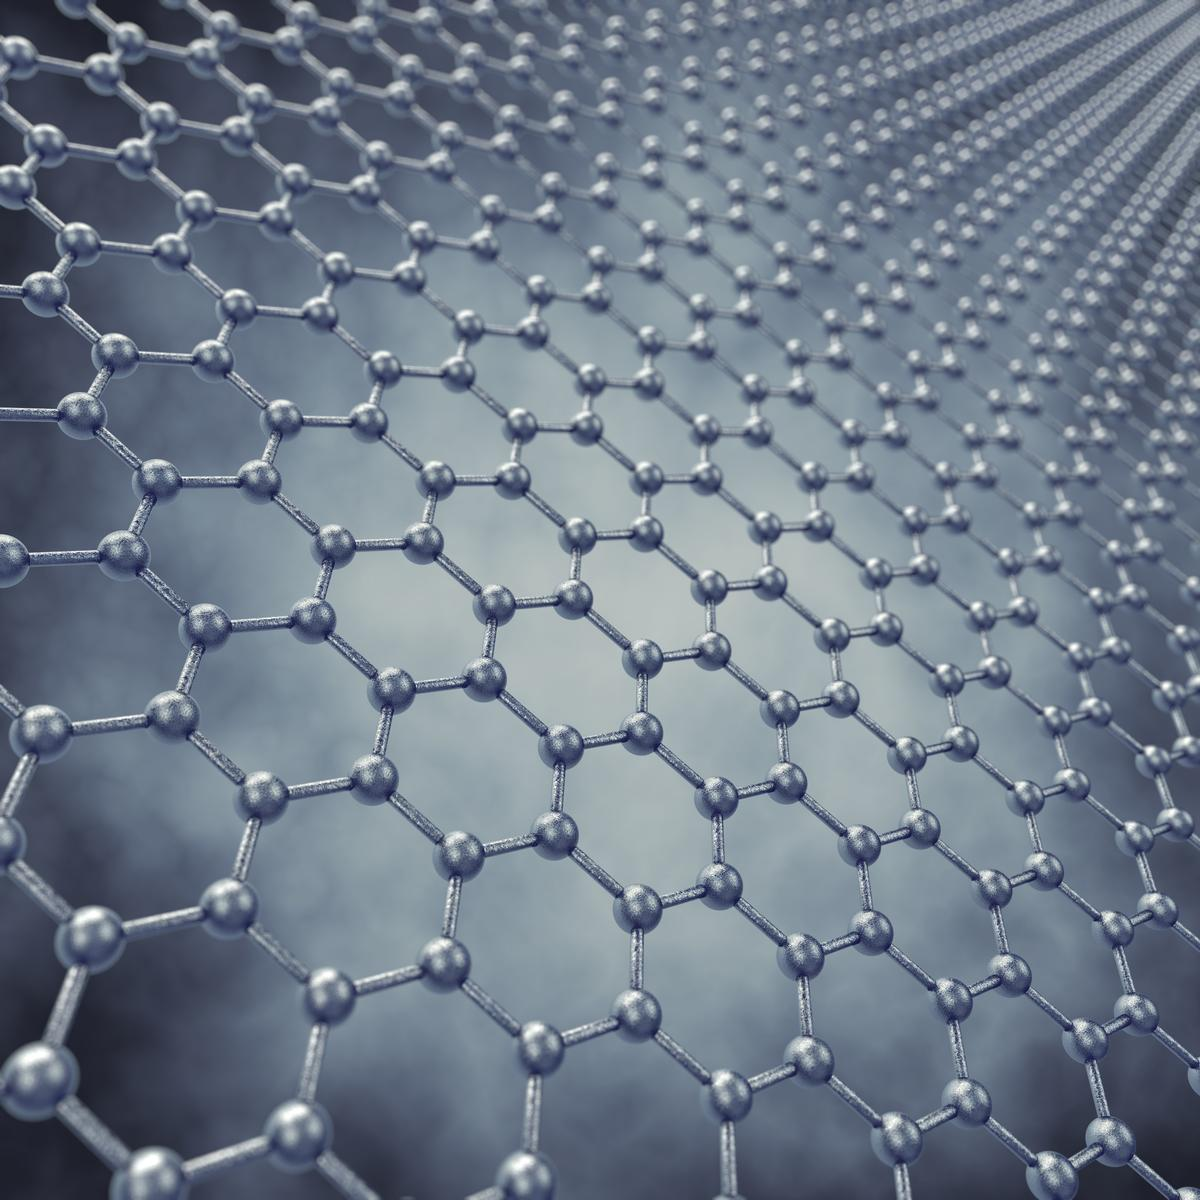 Columbia University researchers have come up with a way to produce large joined sheets of graphene which are just as strong as the material in its pure, crystalline form (Image: Shutterstock)